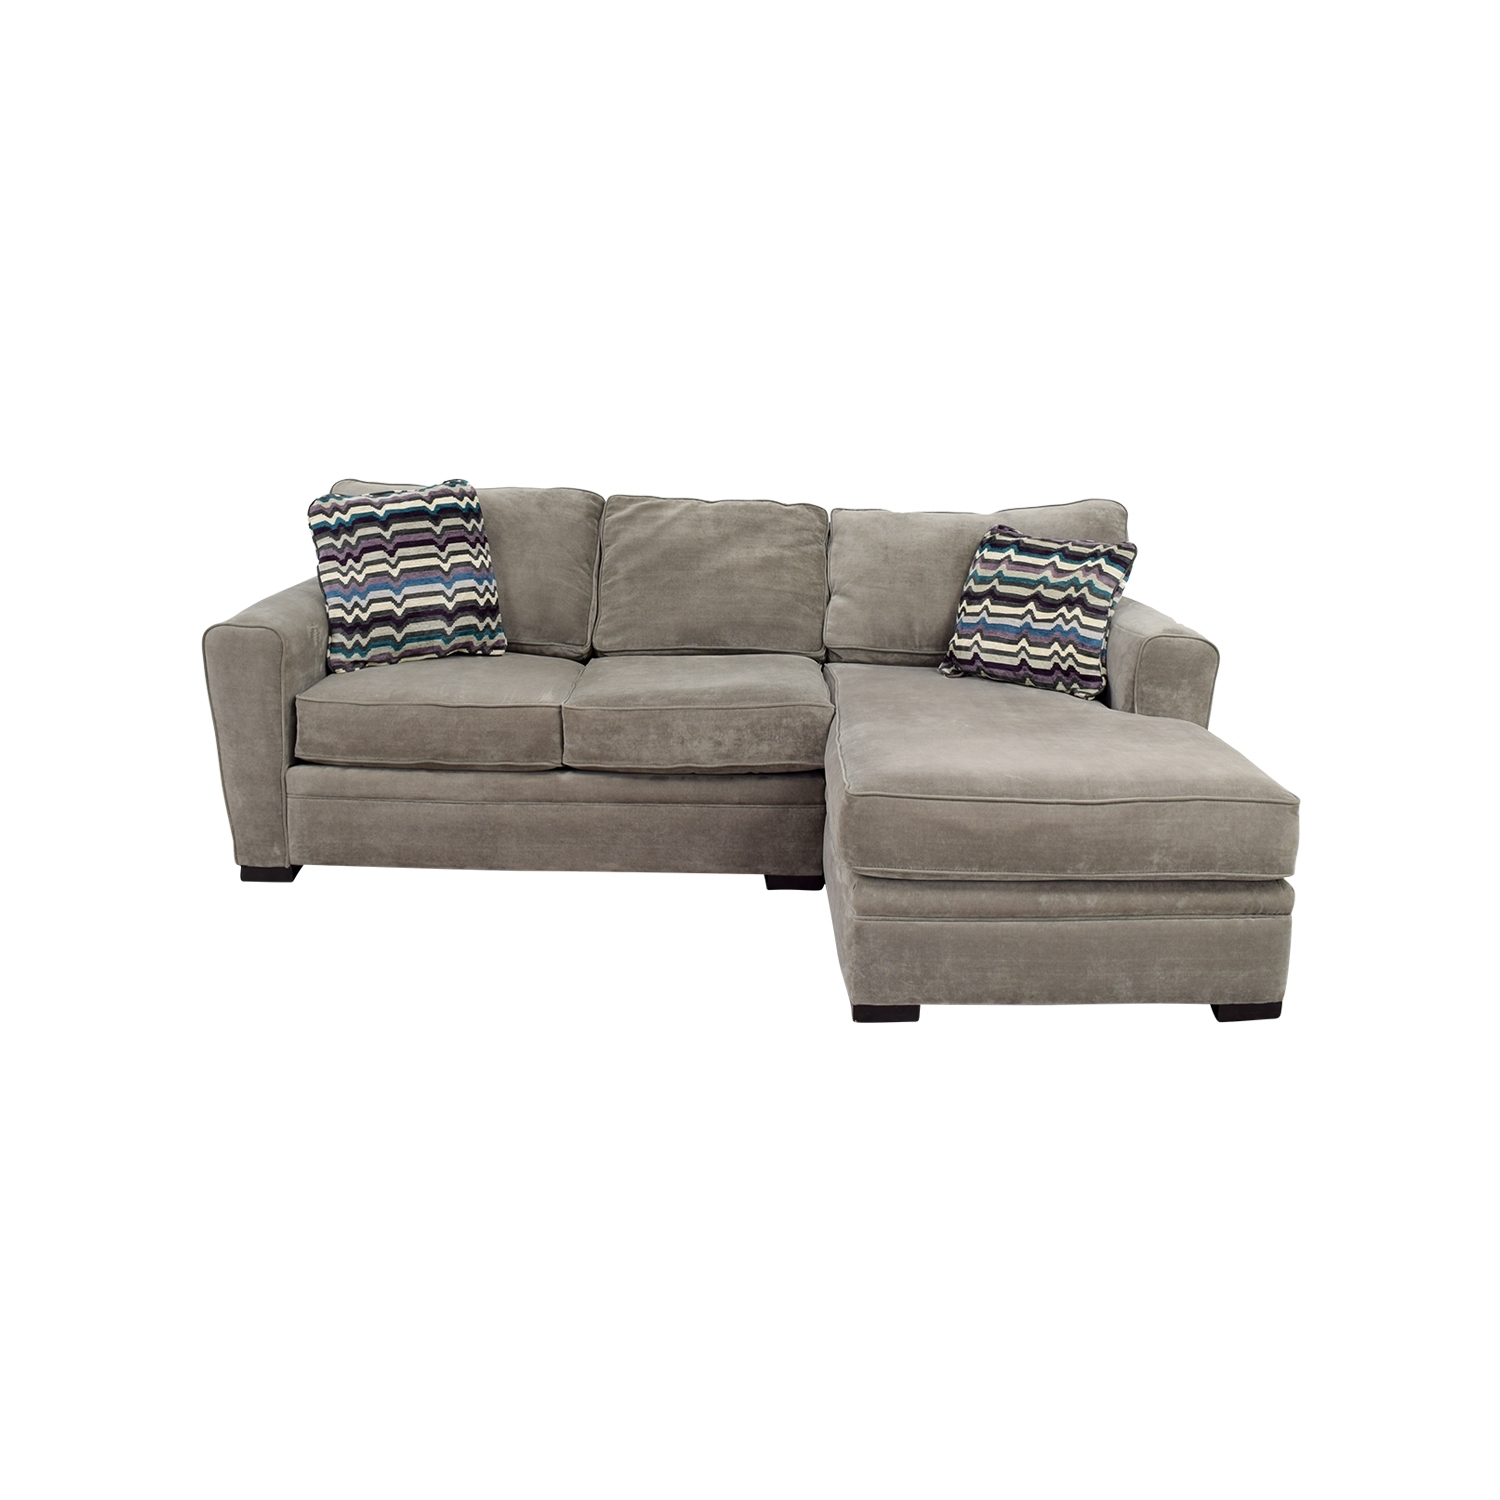 raymour and flanigan sectional sofas the leather sofa company cardiff 10 inspirations at